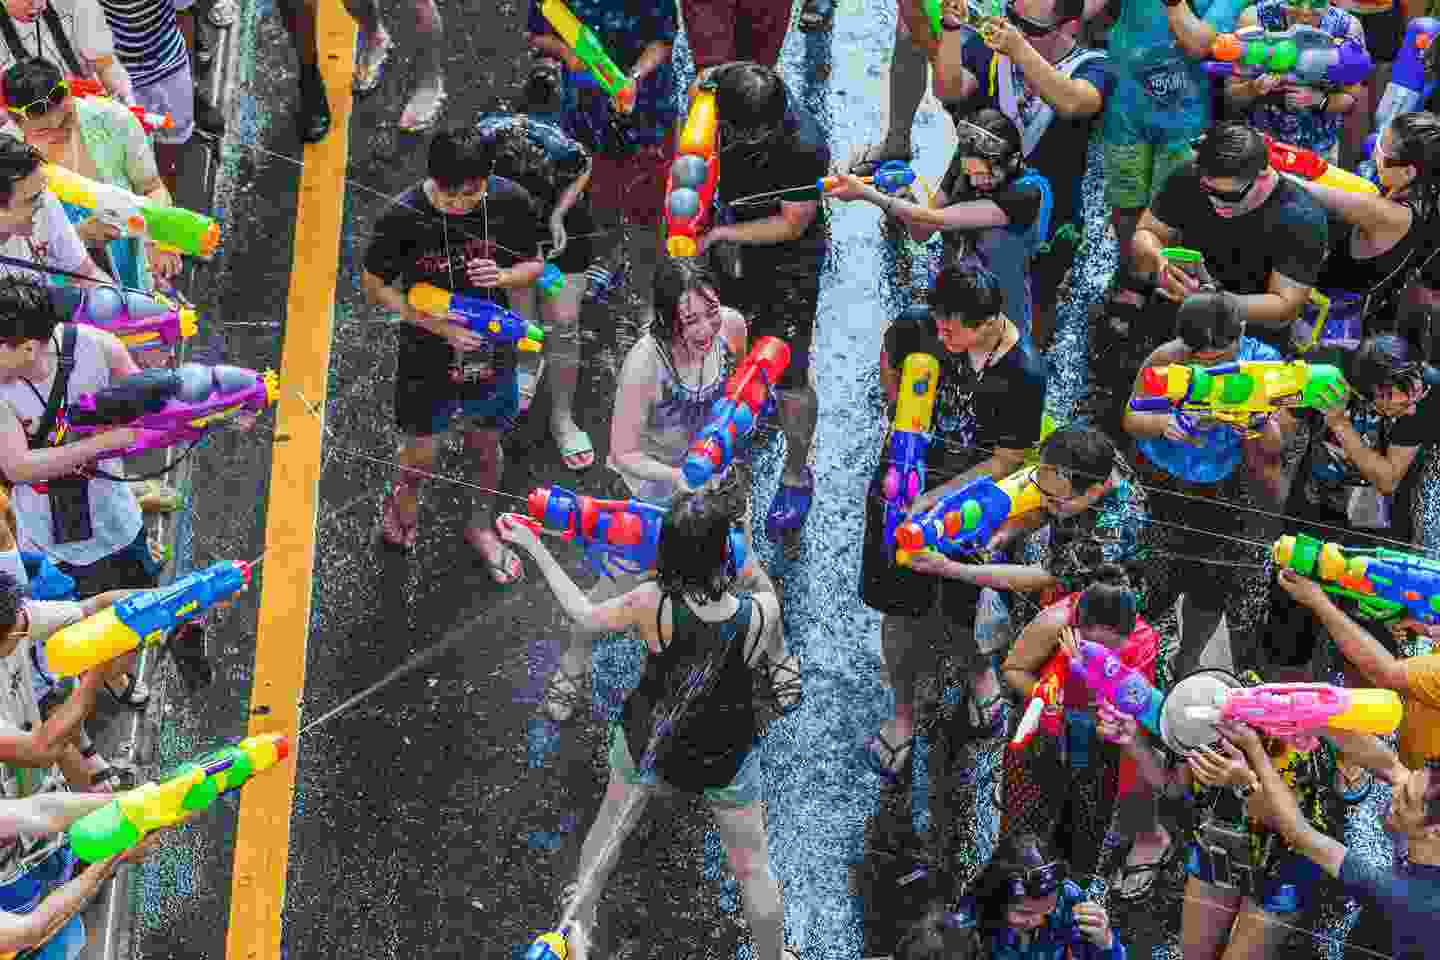 Celebrating Songkran, and smiling through the soaking (Shutterstock)